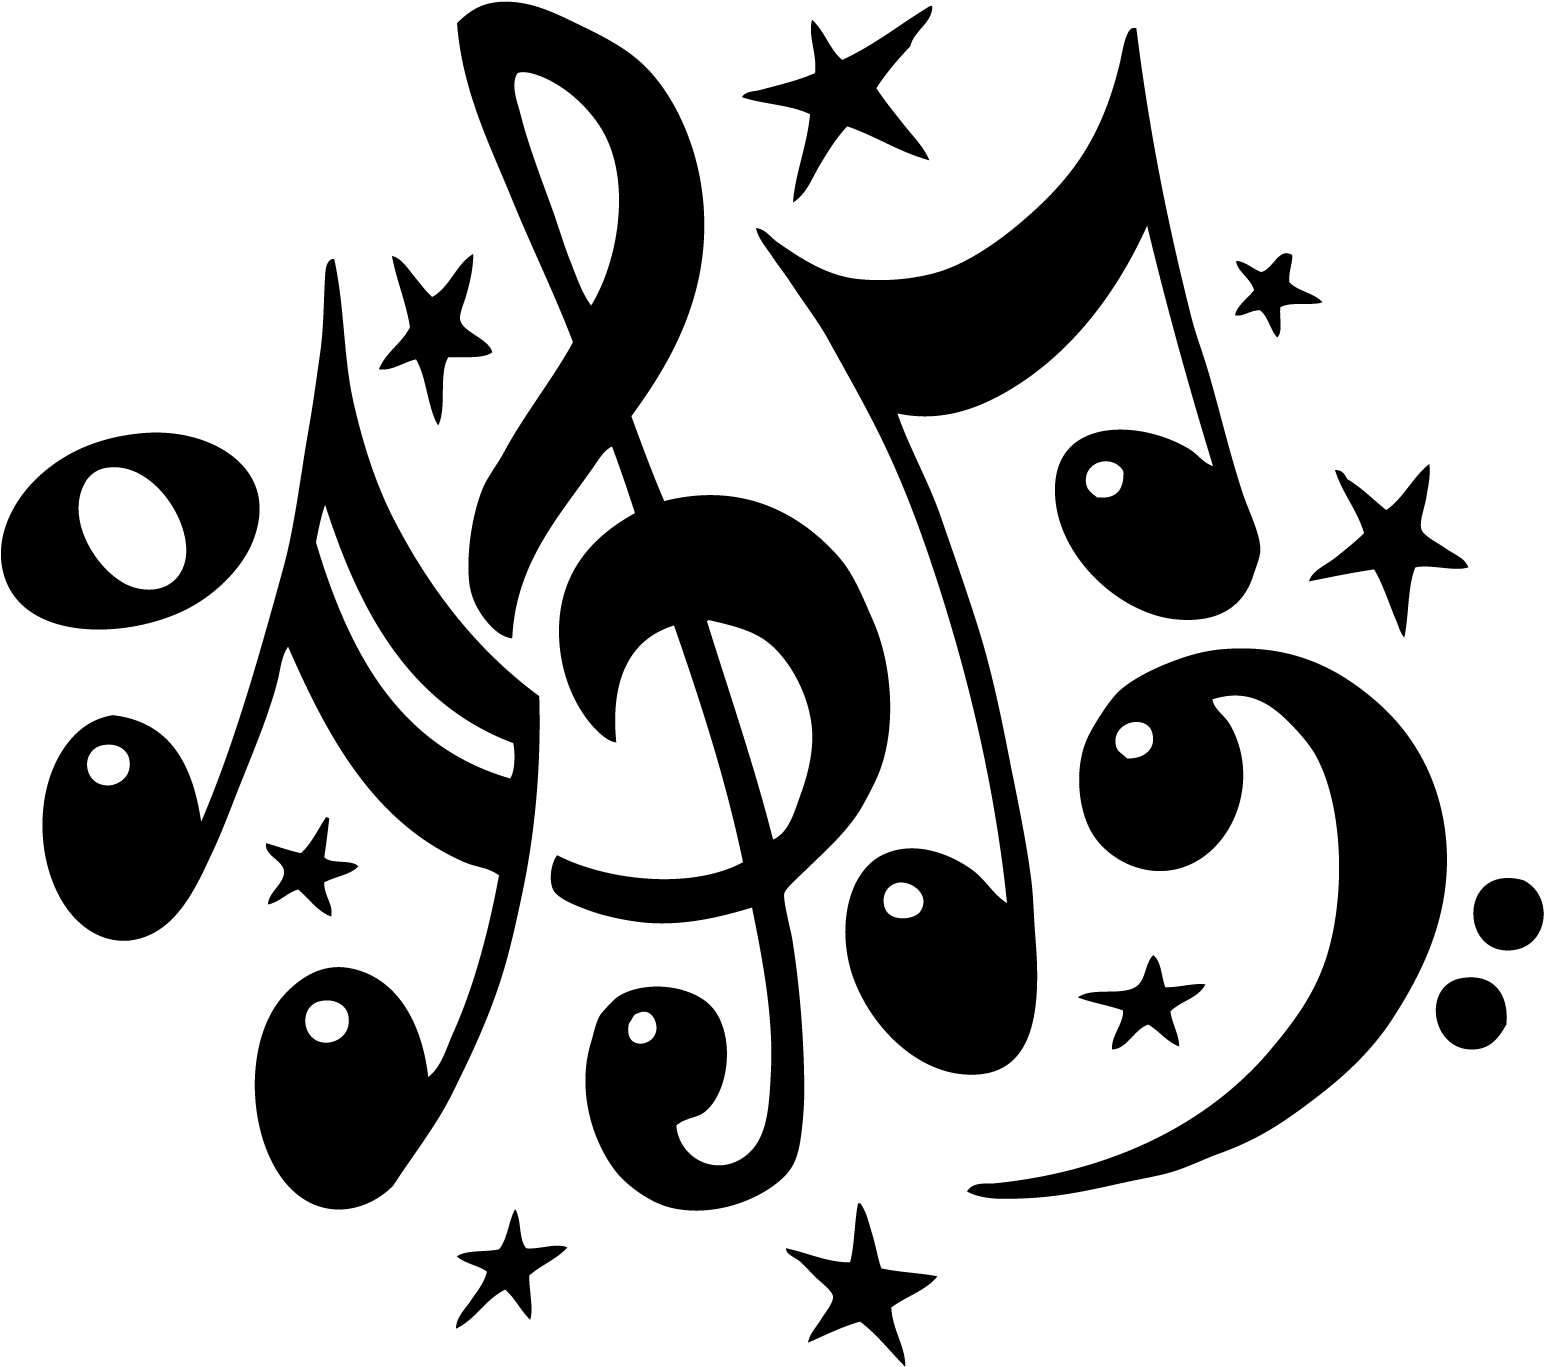 Sheet Music clipart music director Differentstrokesfromdifferentfolks: Music tattoo designs differentstrokesfromdifferentfolks